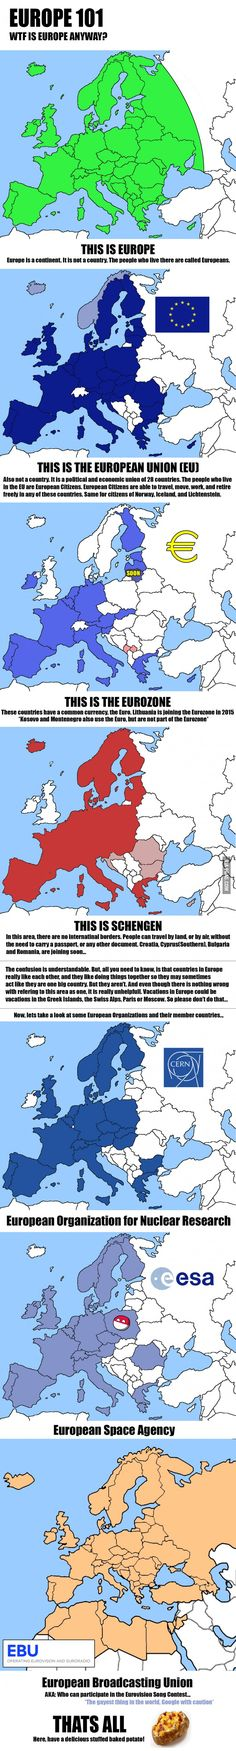 A useful set of maps to understand the European Union and some of its offshots.